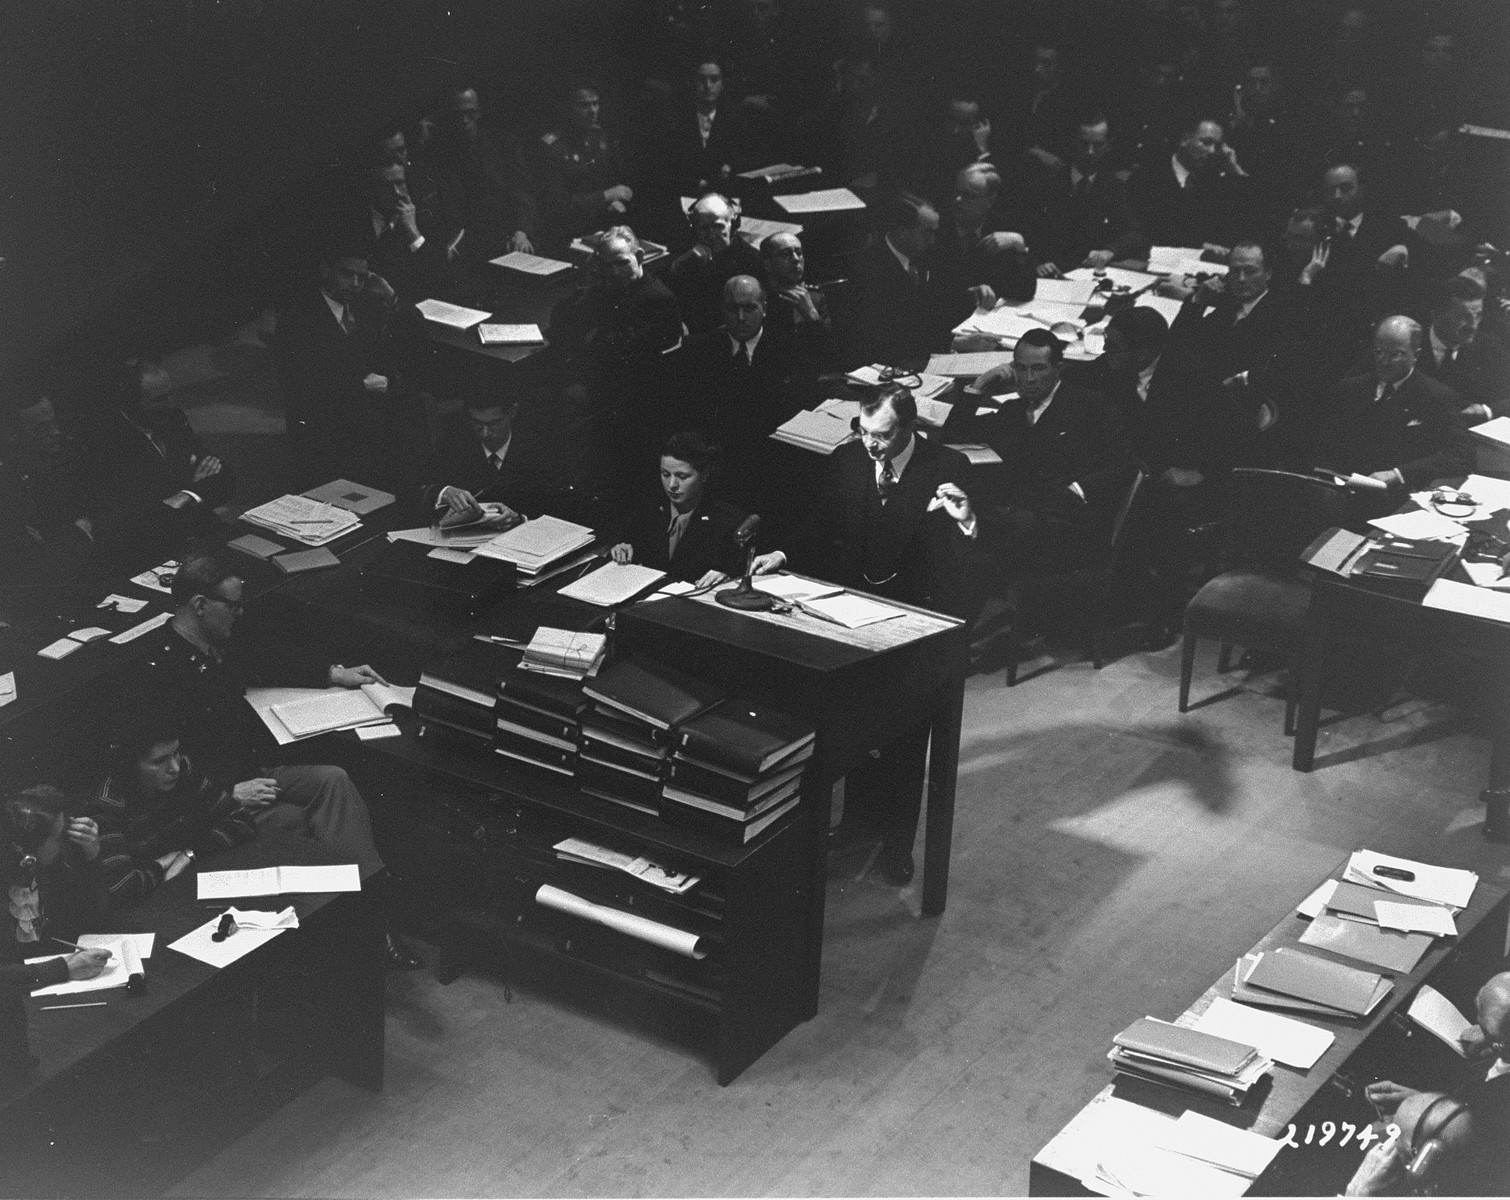 Chief U.S. Counsel Justice Robert Jackson gives his opening statement at the International Military Tribunal for war criminals at Nuremberg.